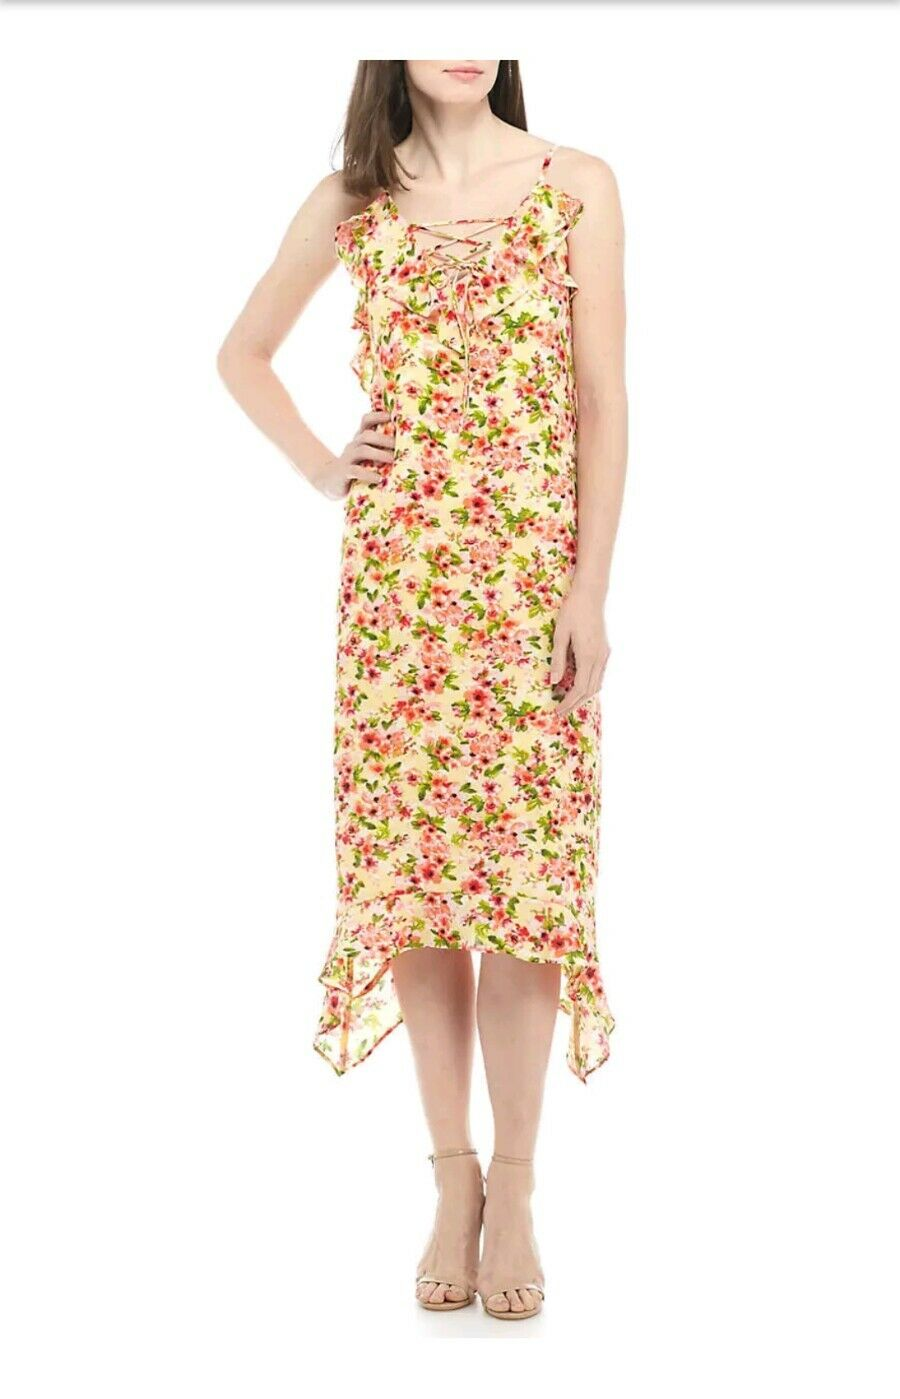 Emma & Michele Women's Size Large Yellow Sun Dress--Floral Ruffled Lined NWT